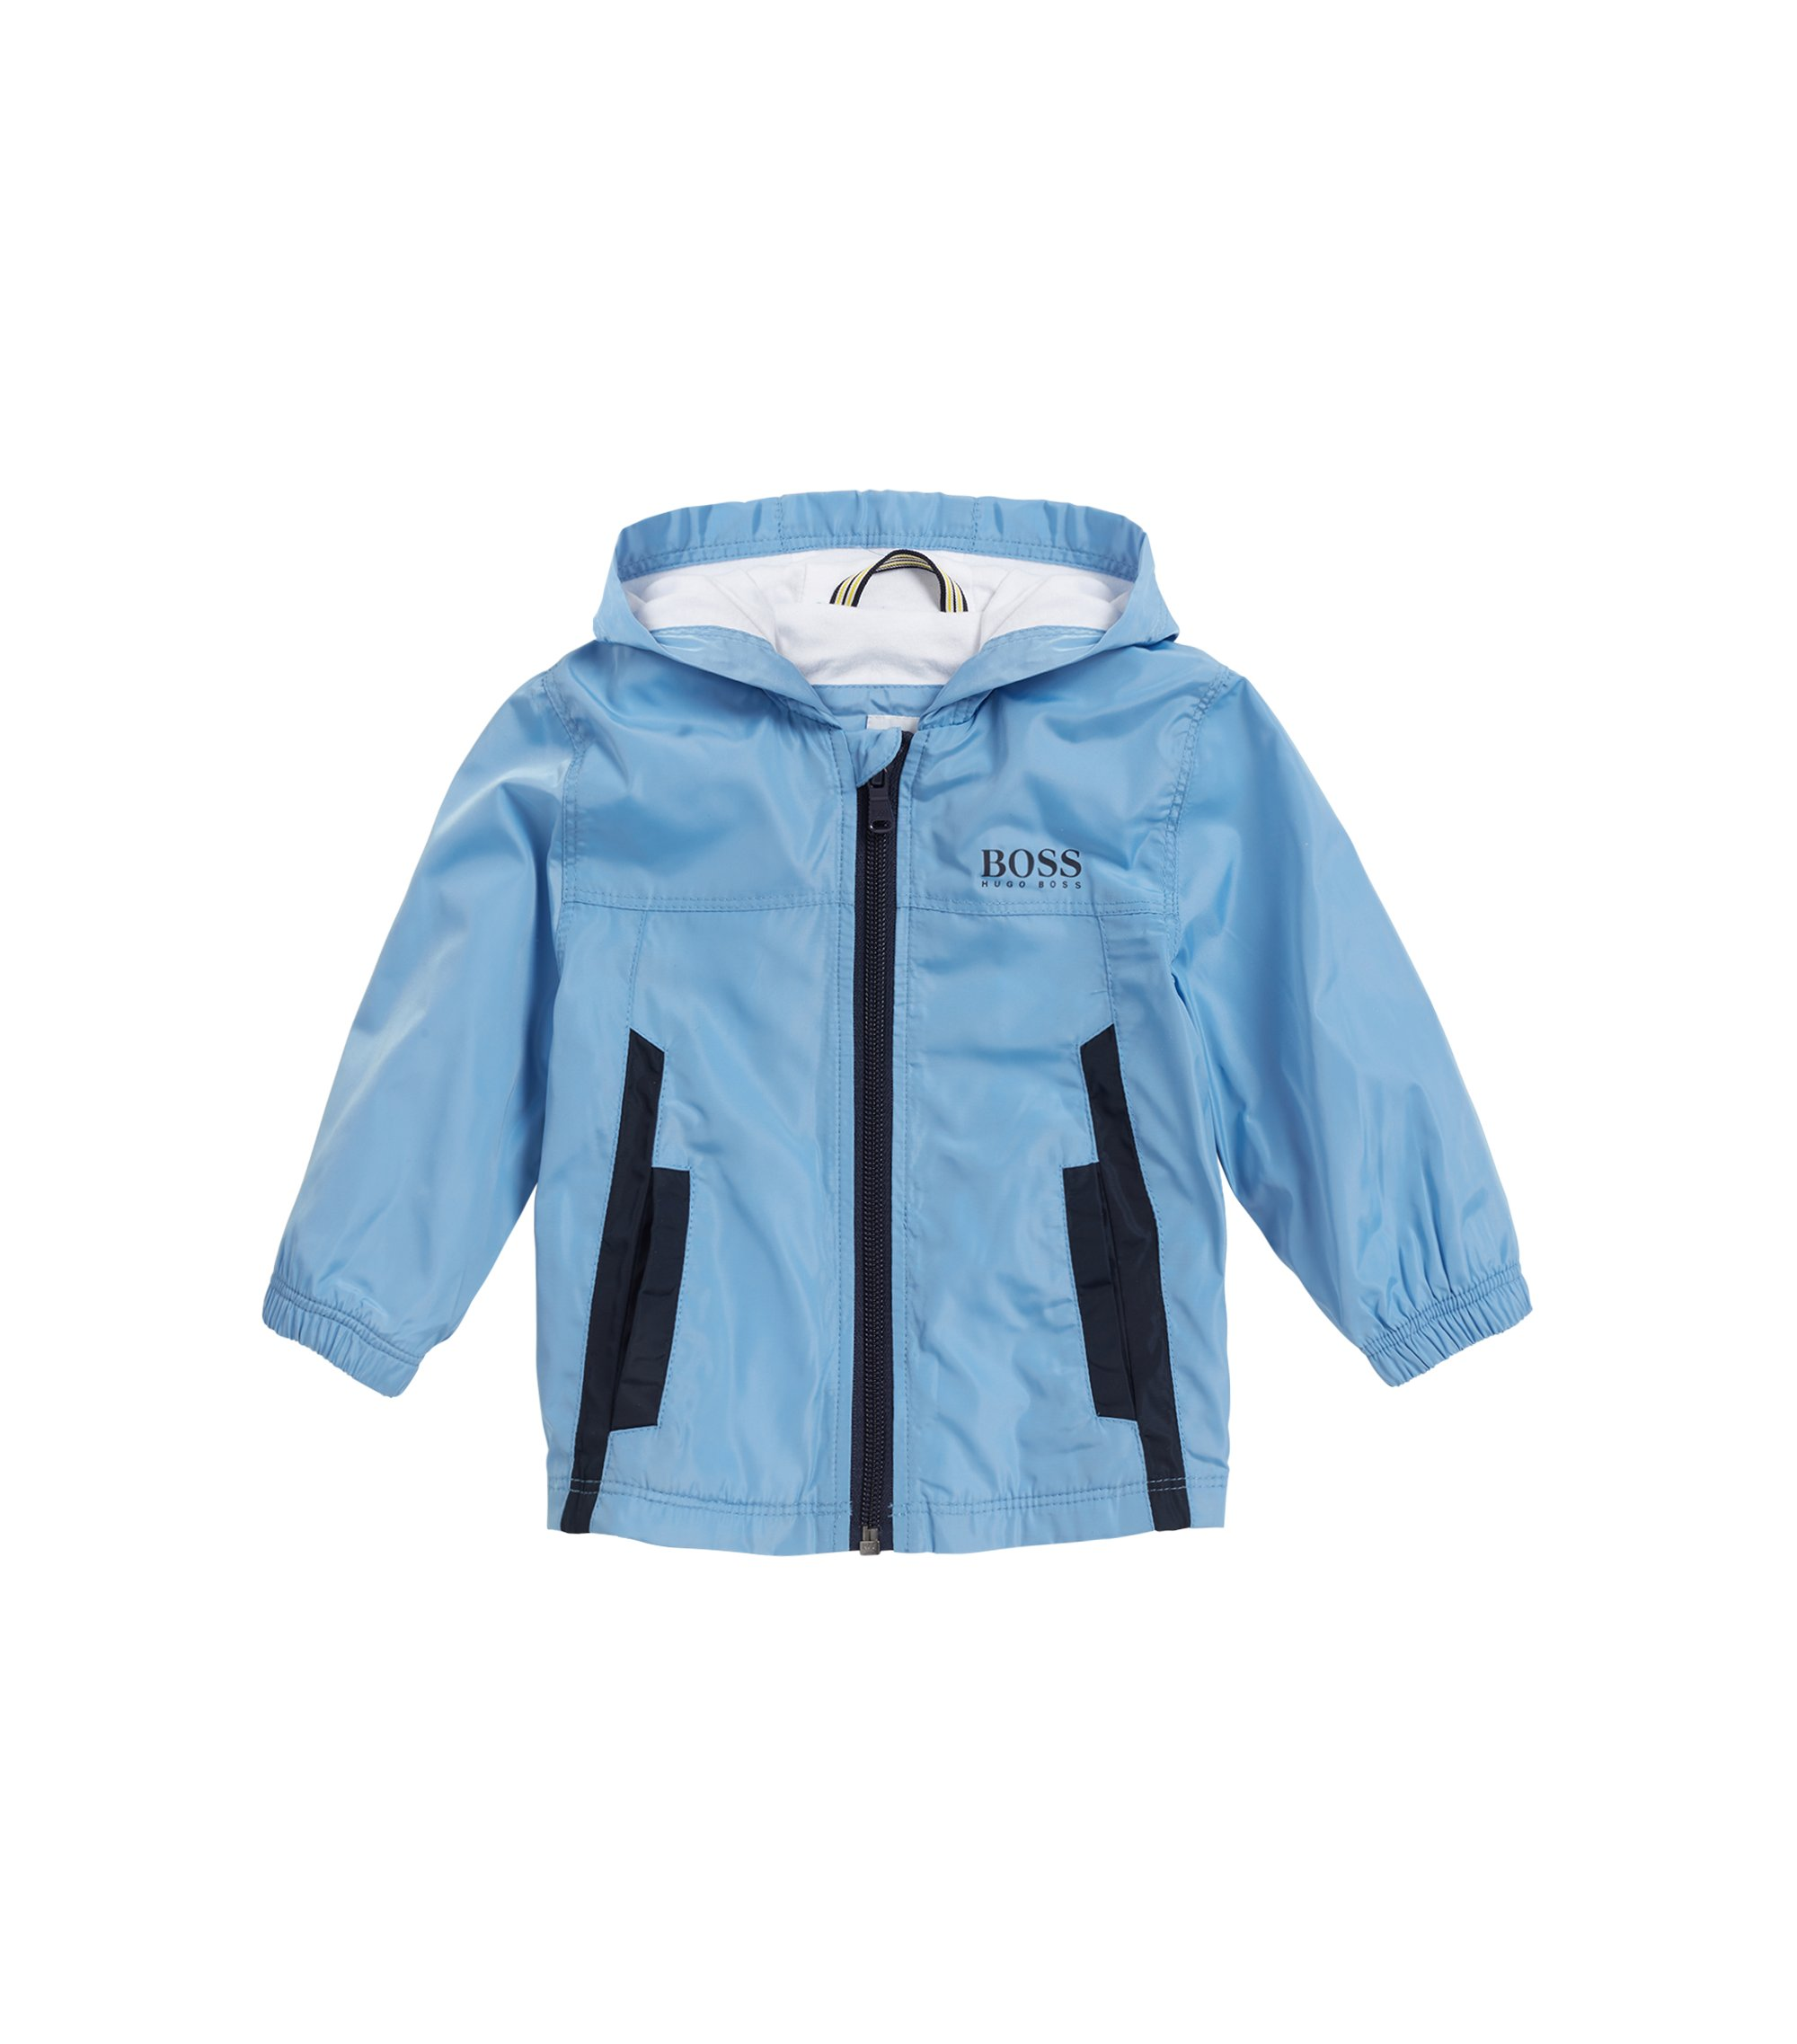 Kids' windbreaker jacket with cotton jersey lining, Turquoise